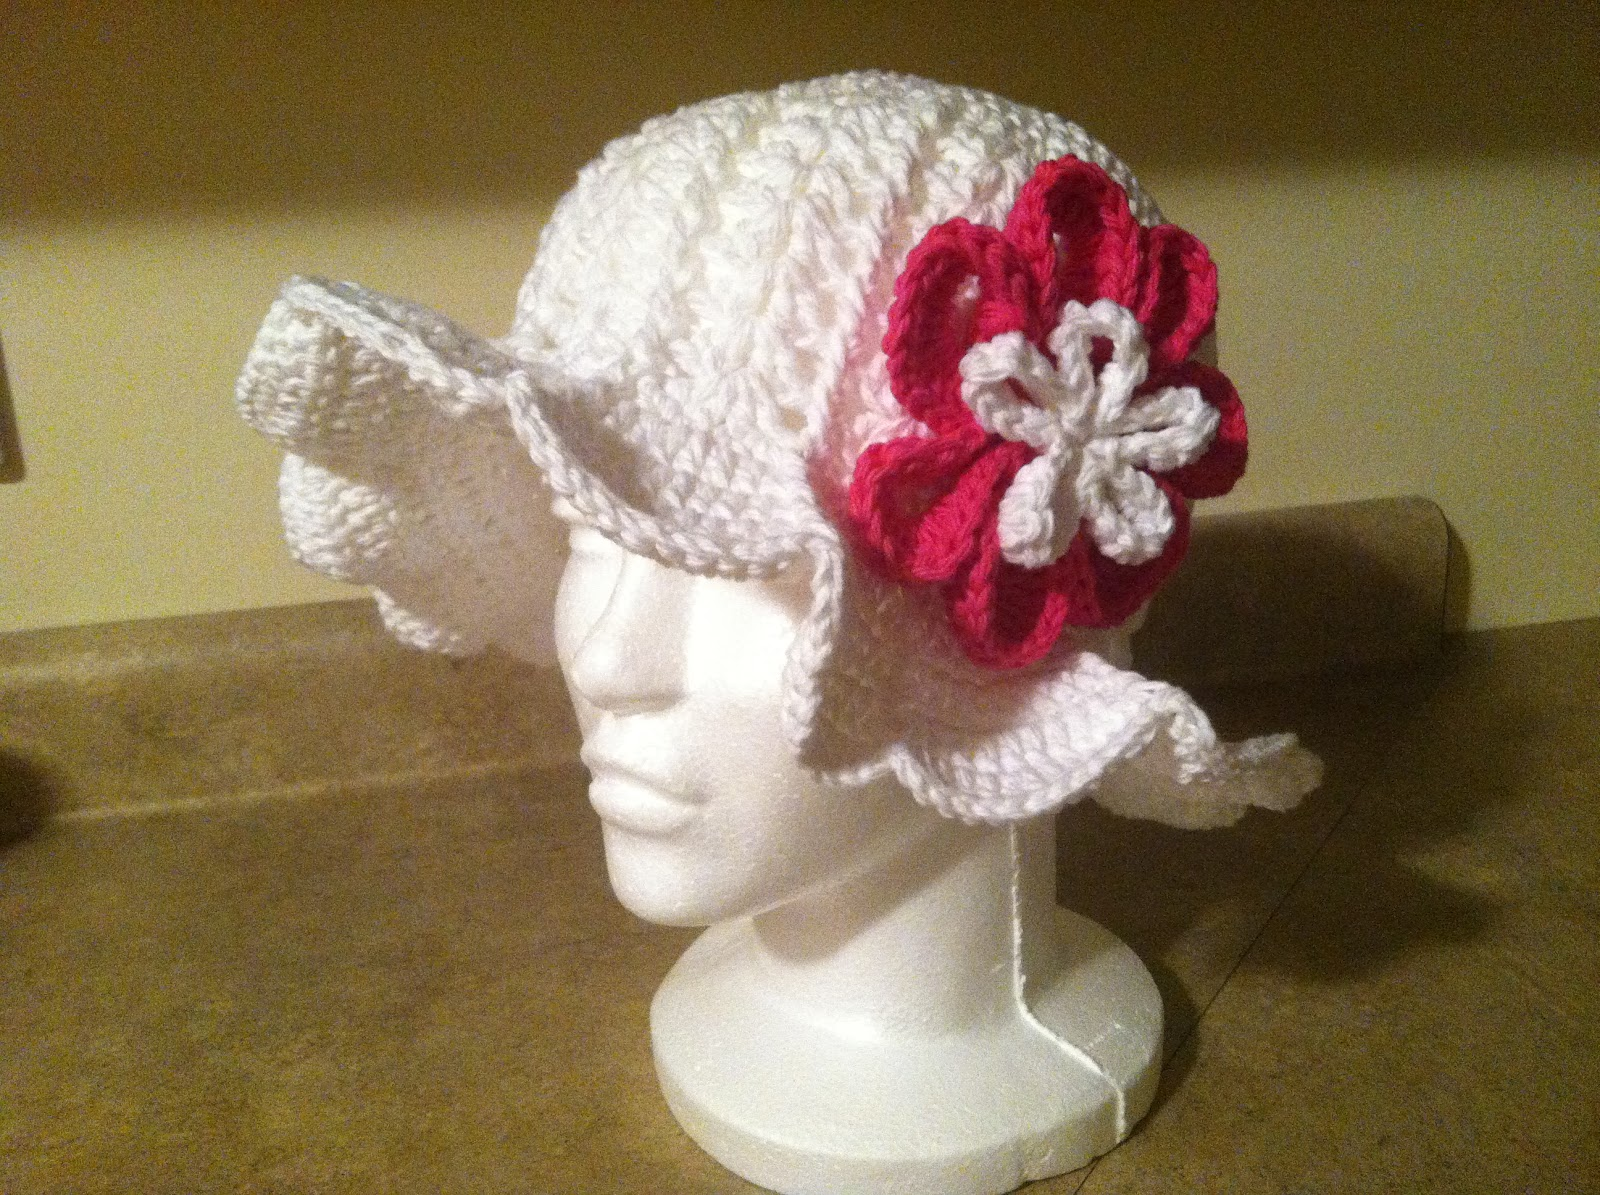 Crochet for Cancer: Chemo Hat & Flower Patterns